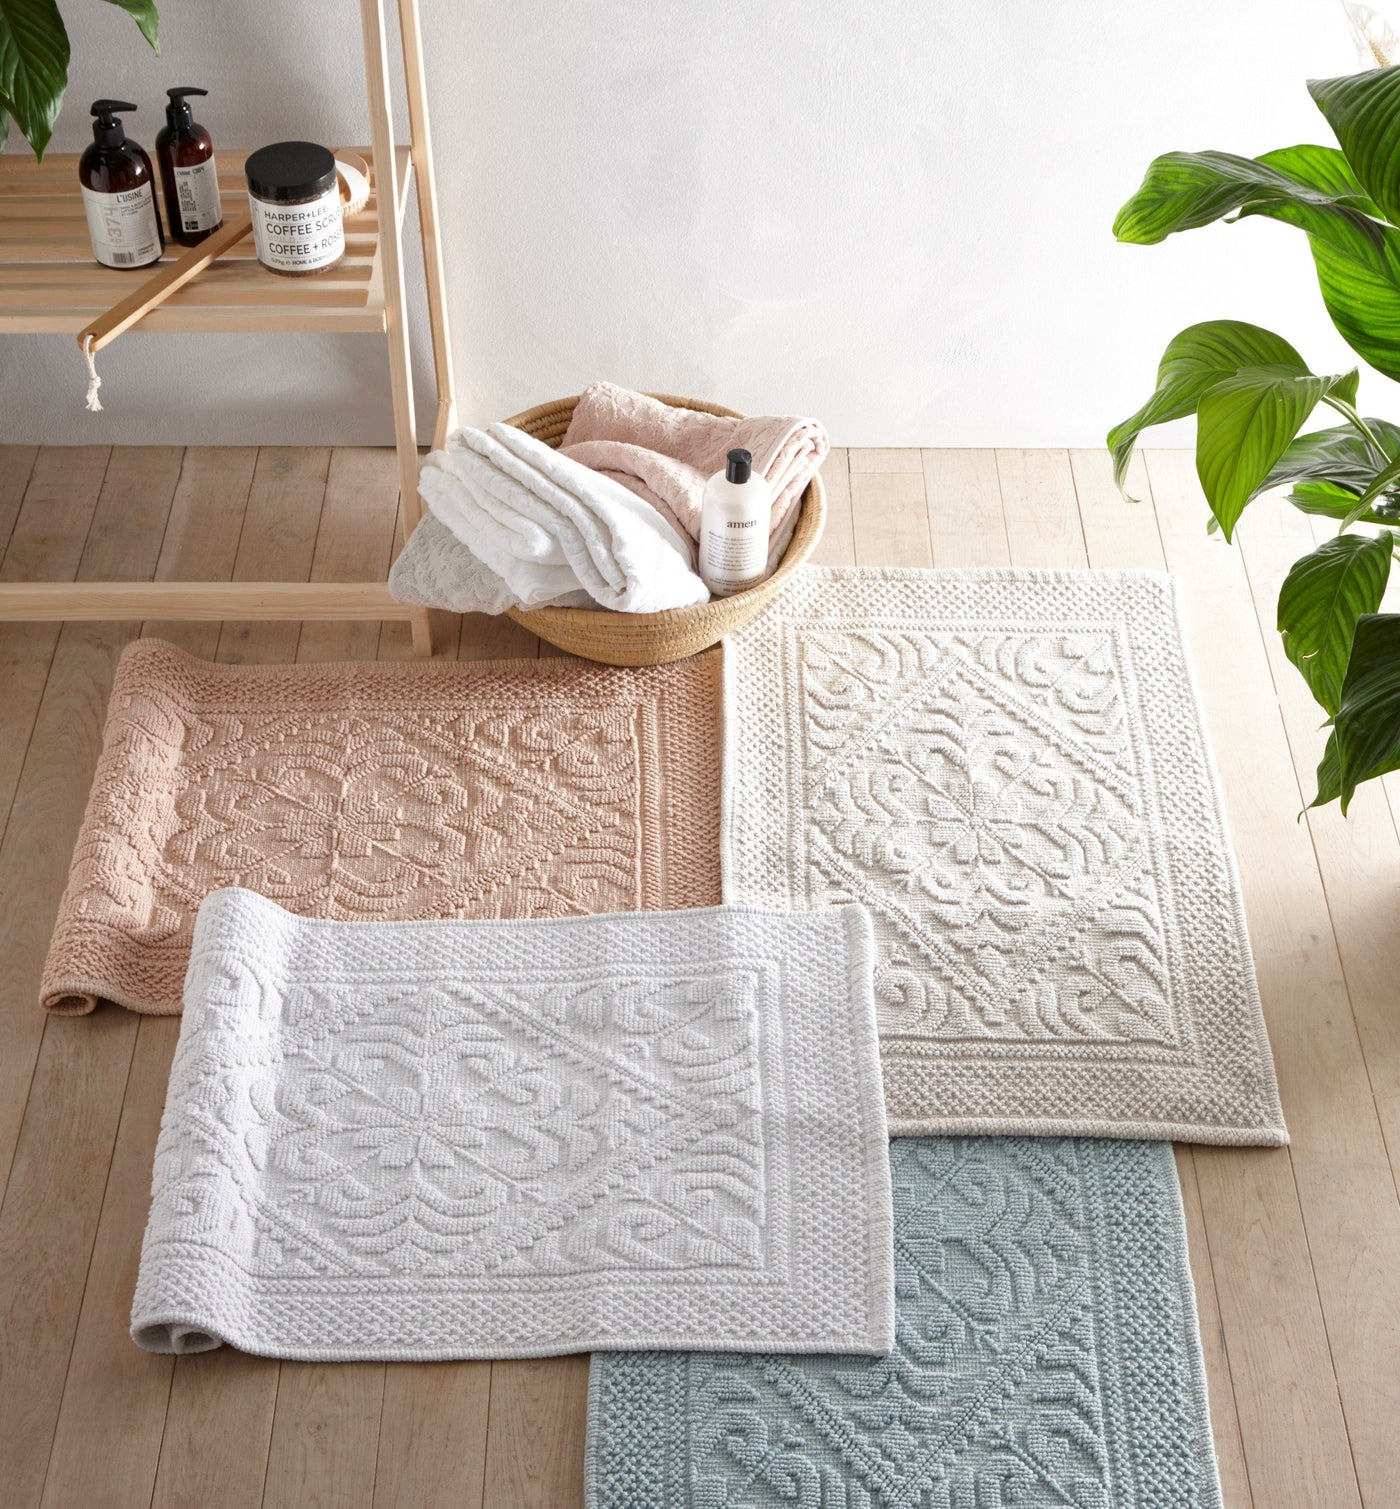 Country House - Bathroom Towels and Mats